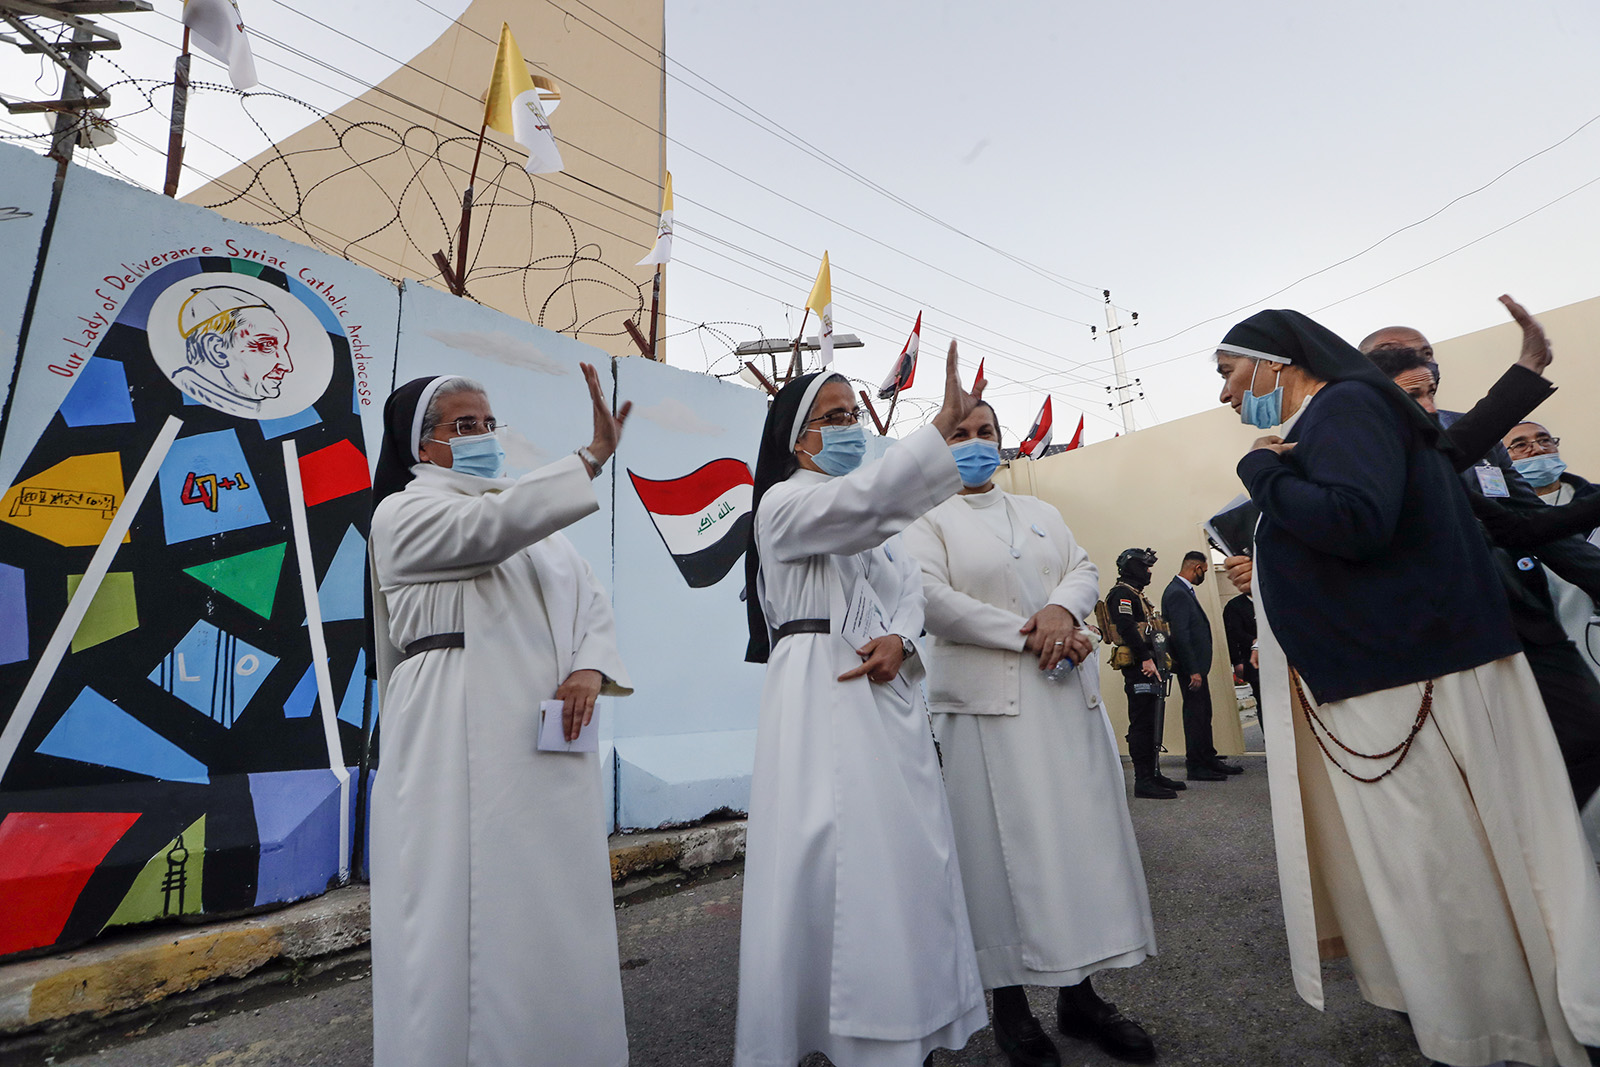 Nuns waves as Pope Francis leaves the Sayidat al-Nejat (Our Lady of Salvation) Cathedral, in Baghdad, Iraq, Friday, March 5, 2021. Pope Francis has arrived in Iraq to urge the country's dwindling number of Christians to stay put and help rebuild the country after years of war and persecution, brushing aside the coronavirus pandemic and security concerns. (AP Photo/Andrew Medichini)